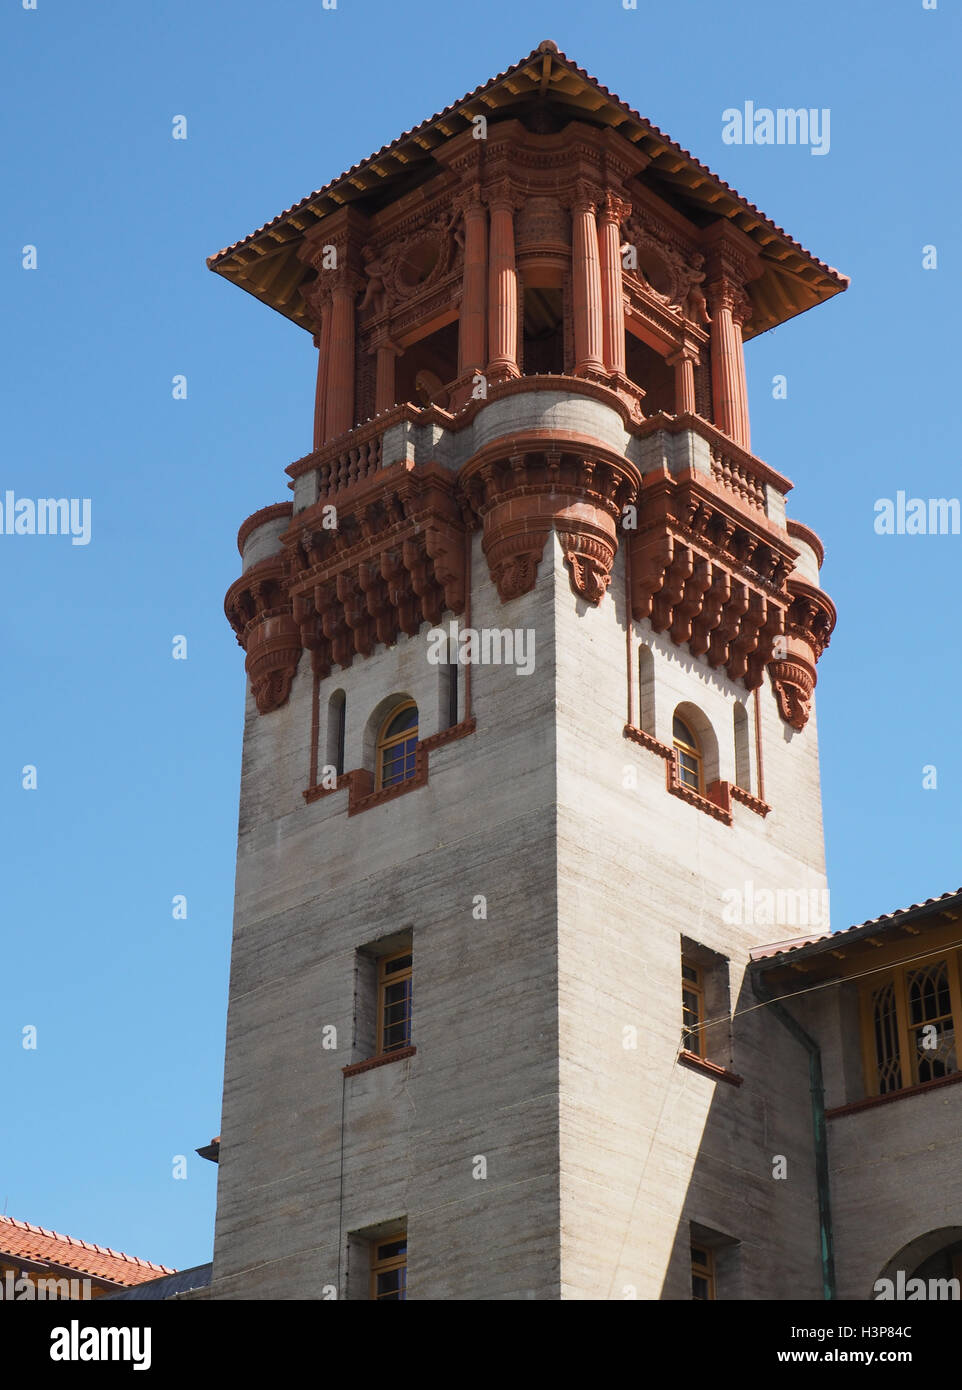 A tower for the Lightner Museum in St. Augustine Florida.  The building was built in 1887 and is Spanish Renaissance - Stock Image